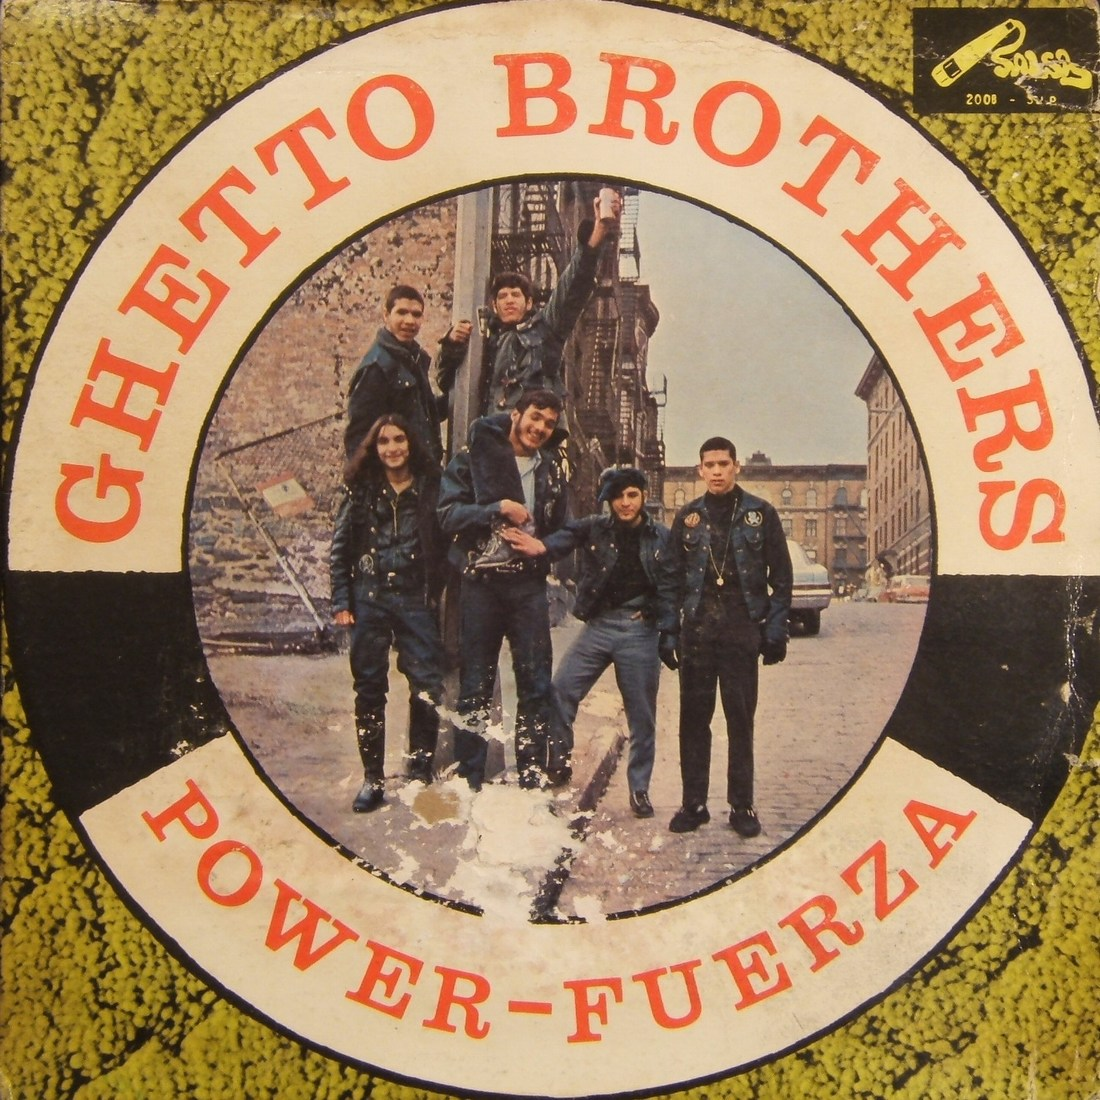 http://www.phonographecorp.com/wp-content/uploads/2012/11/ghetto-brothers-power-fuerza-front.jpg